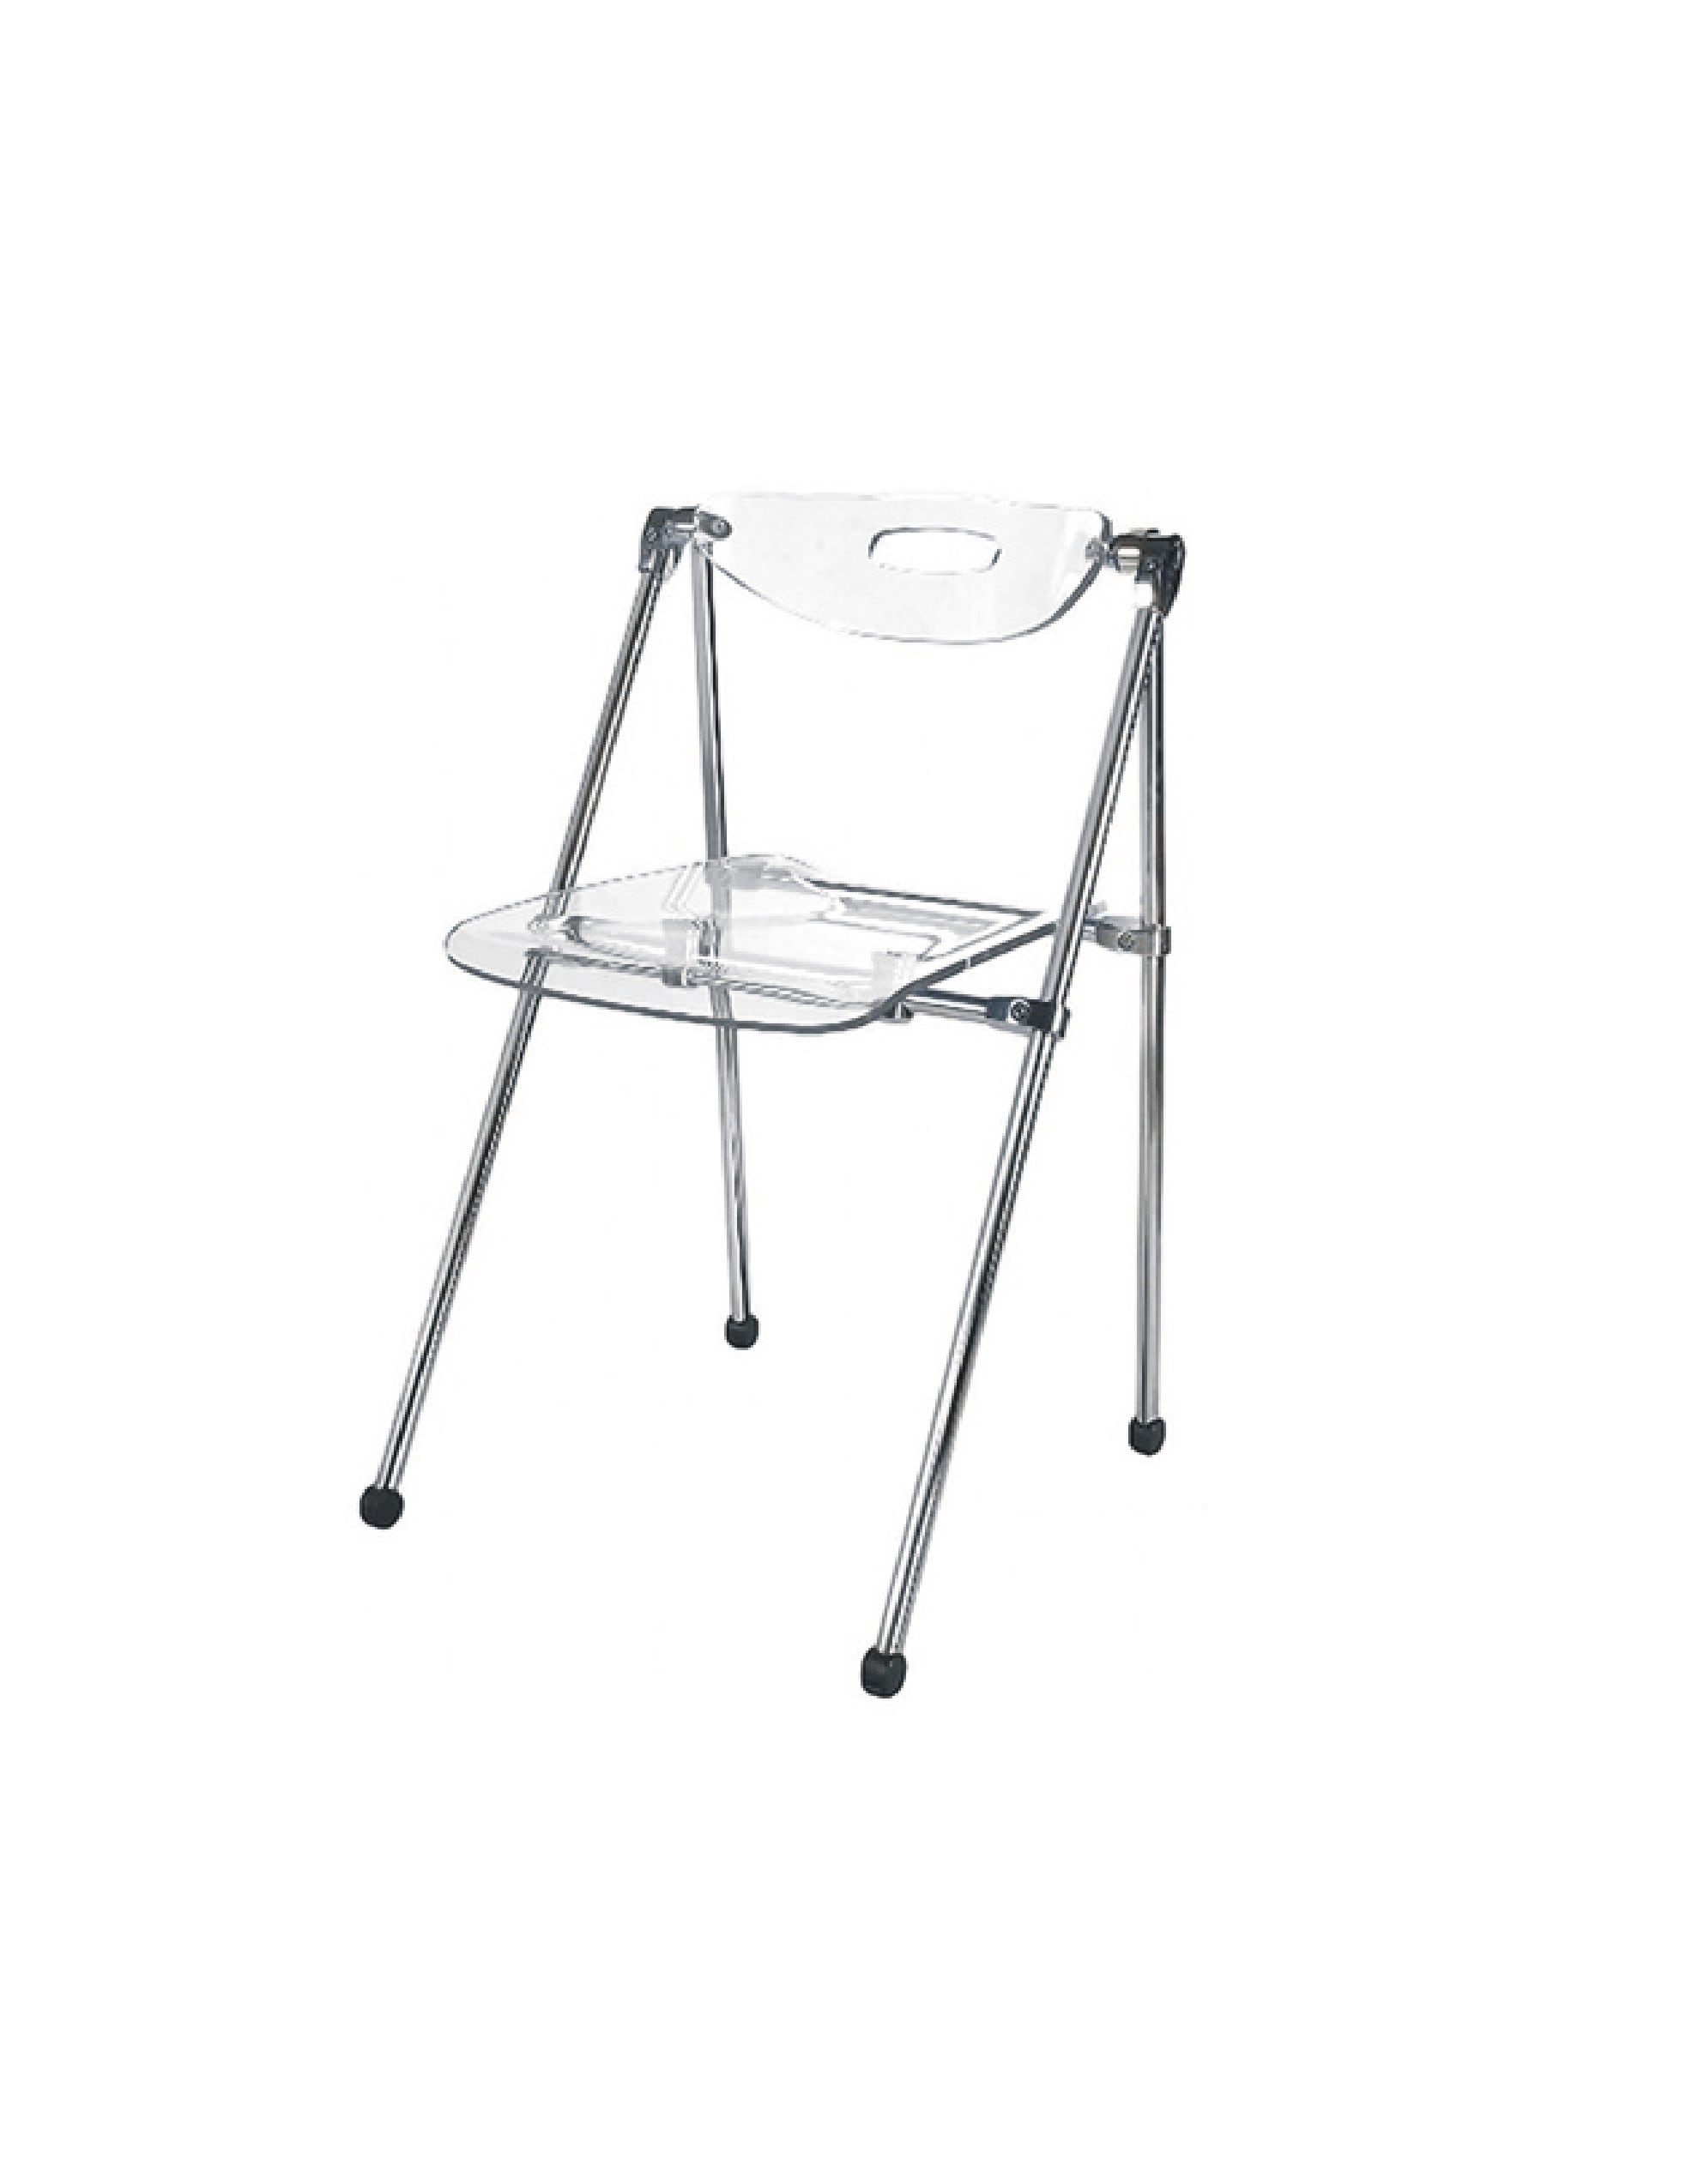 Acrylic Folding Chairs Acrylic Folding Chair Set Of 2 Free Shipping Today